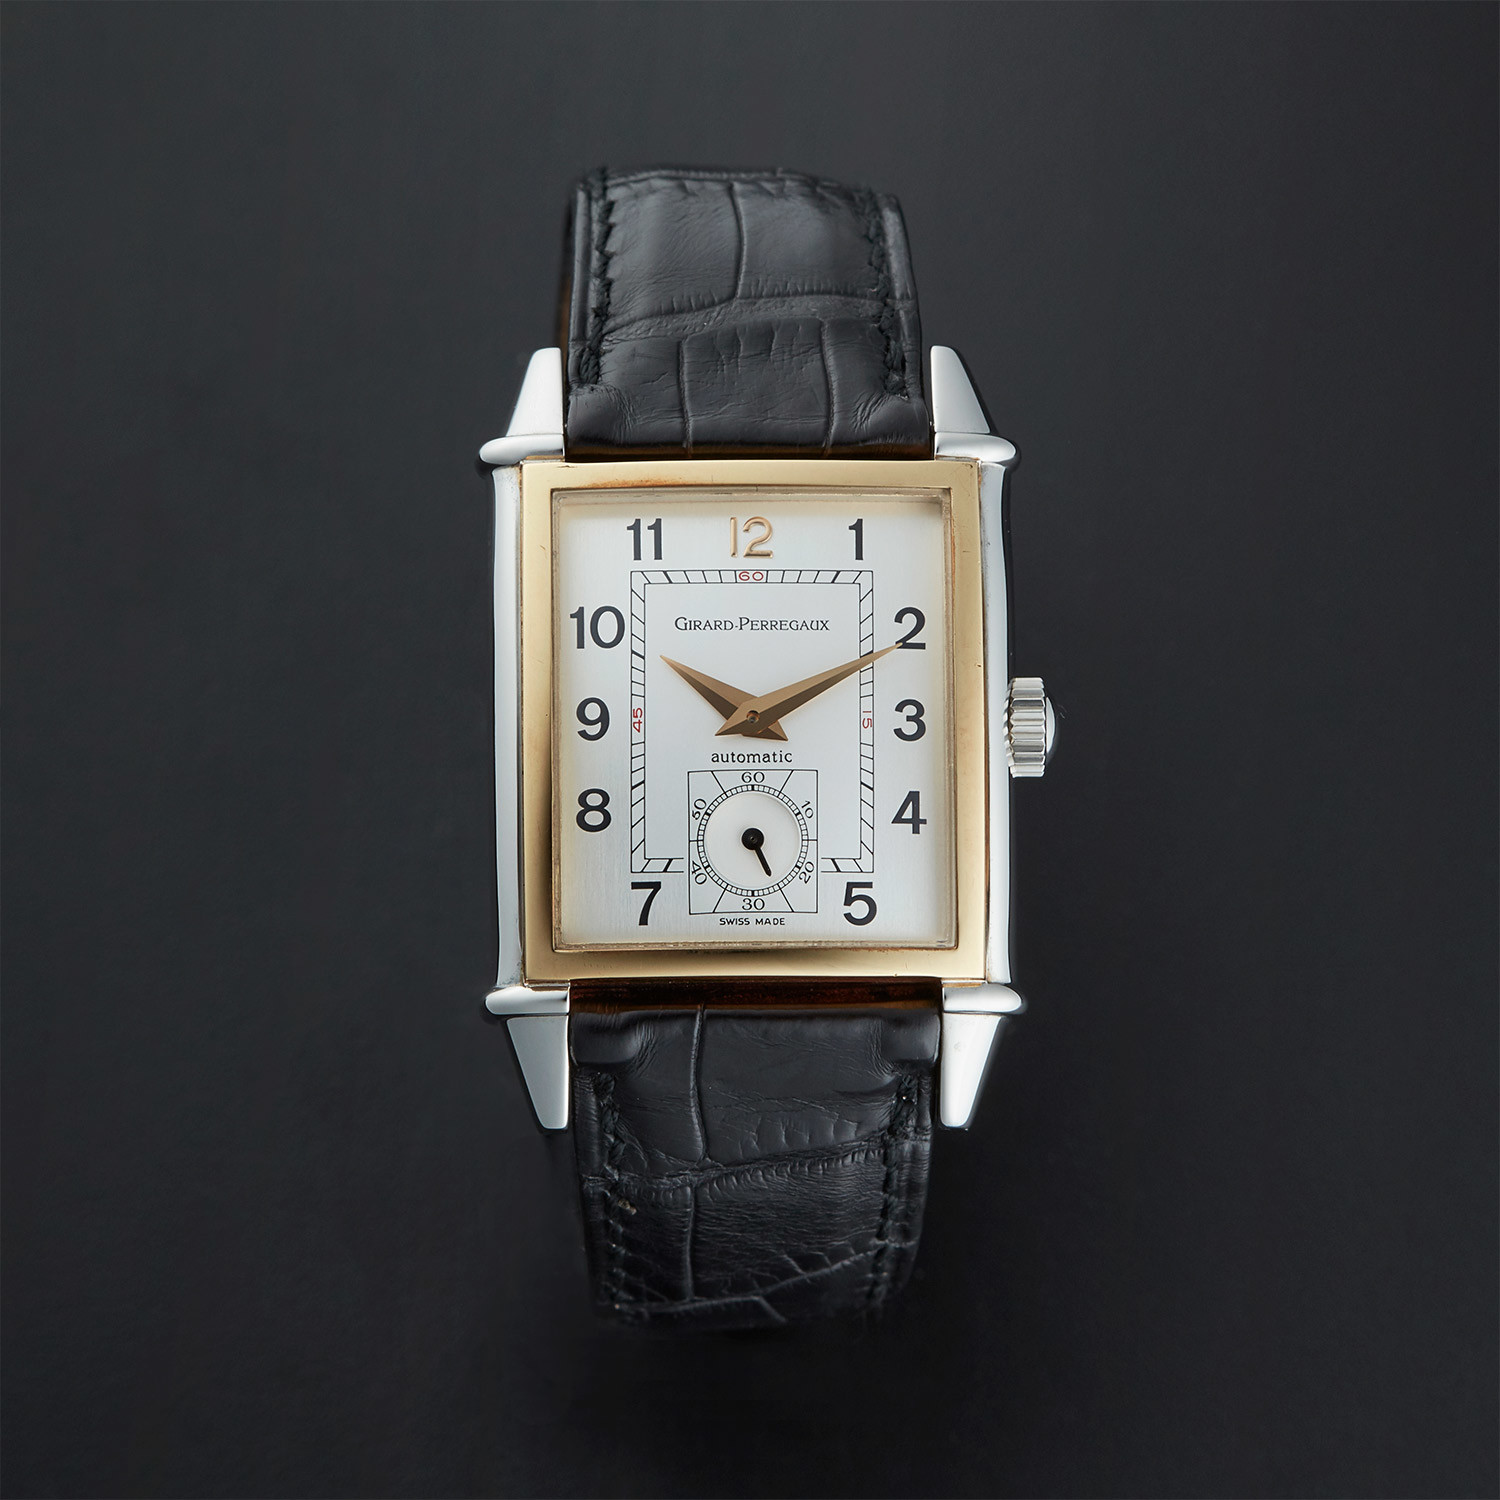 Girard Perregaux Vintage Automatic // 2594 // Store Display